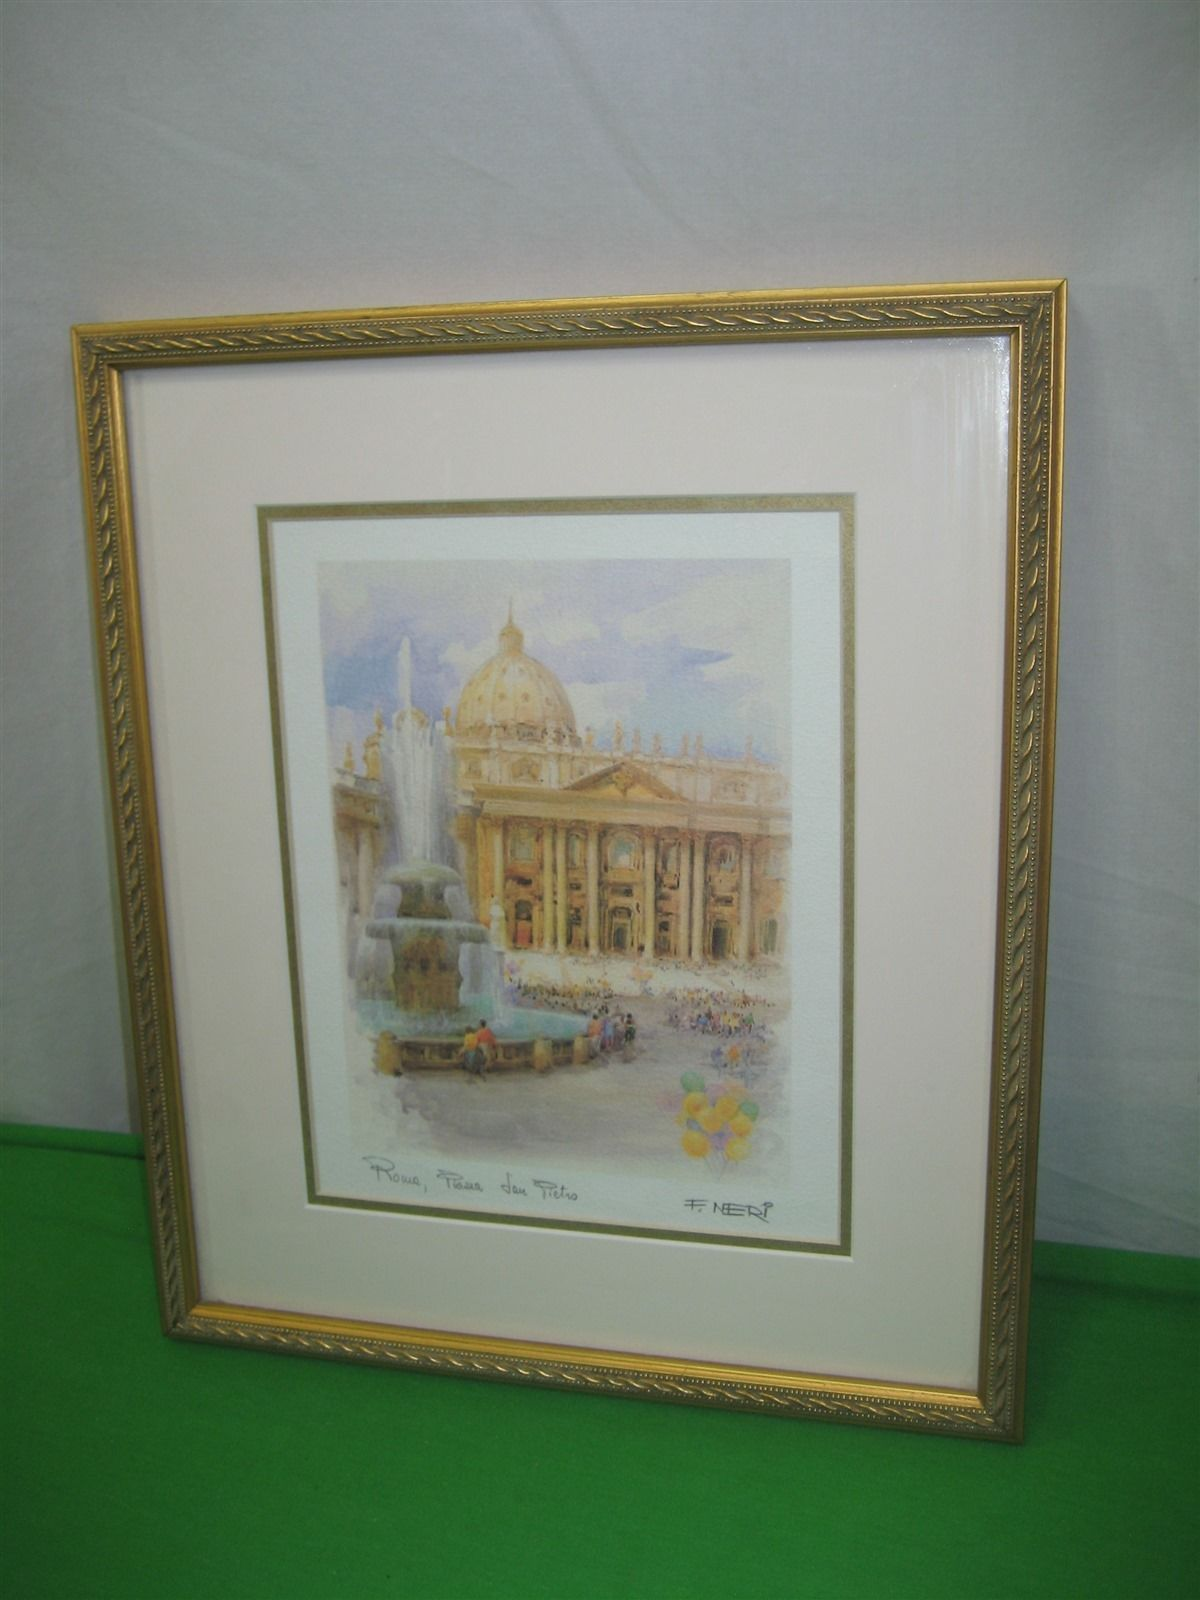 Watercolor Print By F. Neri Rome Italy San Pietro Wood Frame Glass Covered